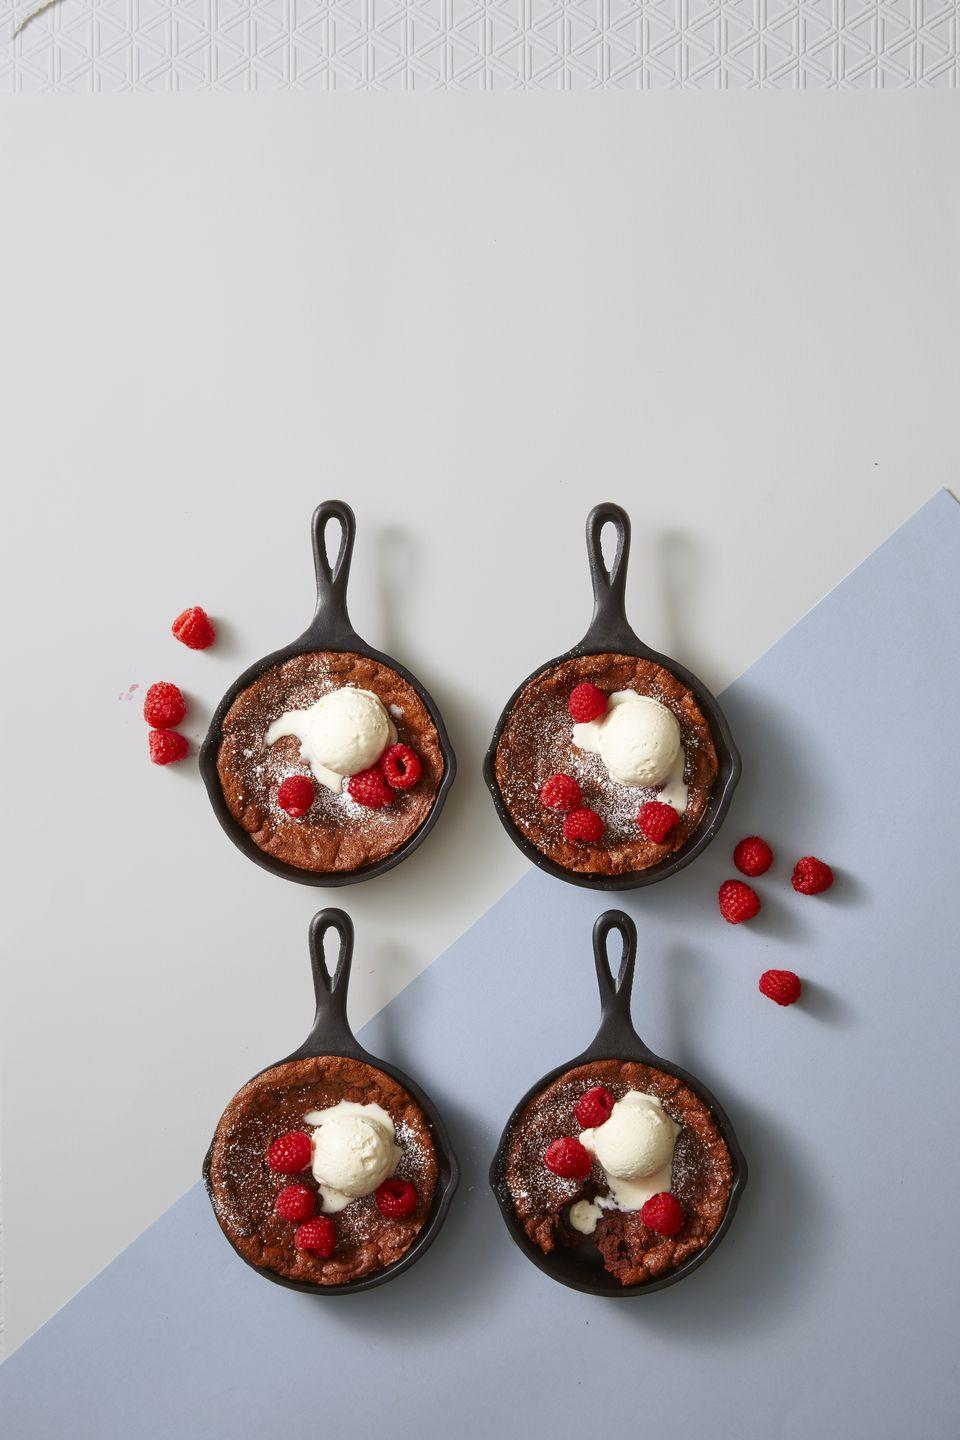 """<p>Your cast-iron skillet was always multi-functional ... but brownies? Who knew? Top with berries and generous scoops of ice cream to add to the fun.</p><p><a class=""""link rapid-noclick-resp"""" href=""""https://www.amazon.com/Lodge-LMS3-Miniature-Skillet/dp/B000LXA9YI/?tag=syn-yahoo-20&ascsubtag=%5Bartid%7C10055.g.4249%5Bsrc%7Cyahoo-us"""" rel=""""nofollow noopener"""" target=""""_blank"""" data-ylk=""""slk:SHOP MINI SKILLETS"""">SHOP MINI SKILLETS</a></p><p><em><a href=""""https://www.goodhousekeeping.com/food-recipes/dessert/a42823/molten-chocolate-skillet-brownies-recipe/"""" rel=""""nofollow noopener"""" target=""""_blank"""" data-ylk=""""slk:Get the recipe for Molten Chocolate Skillet Brownies »"""" class=""""link rapid-noclick-resp"""">Get the recipe for Molten Chocolate Skillet Brownies »</a></em> </p>"""